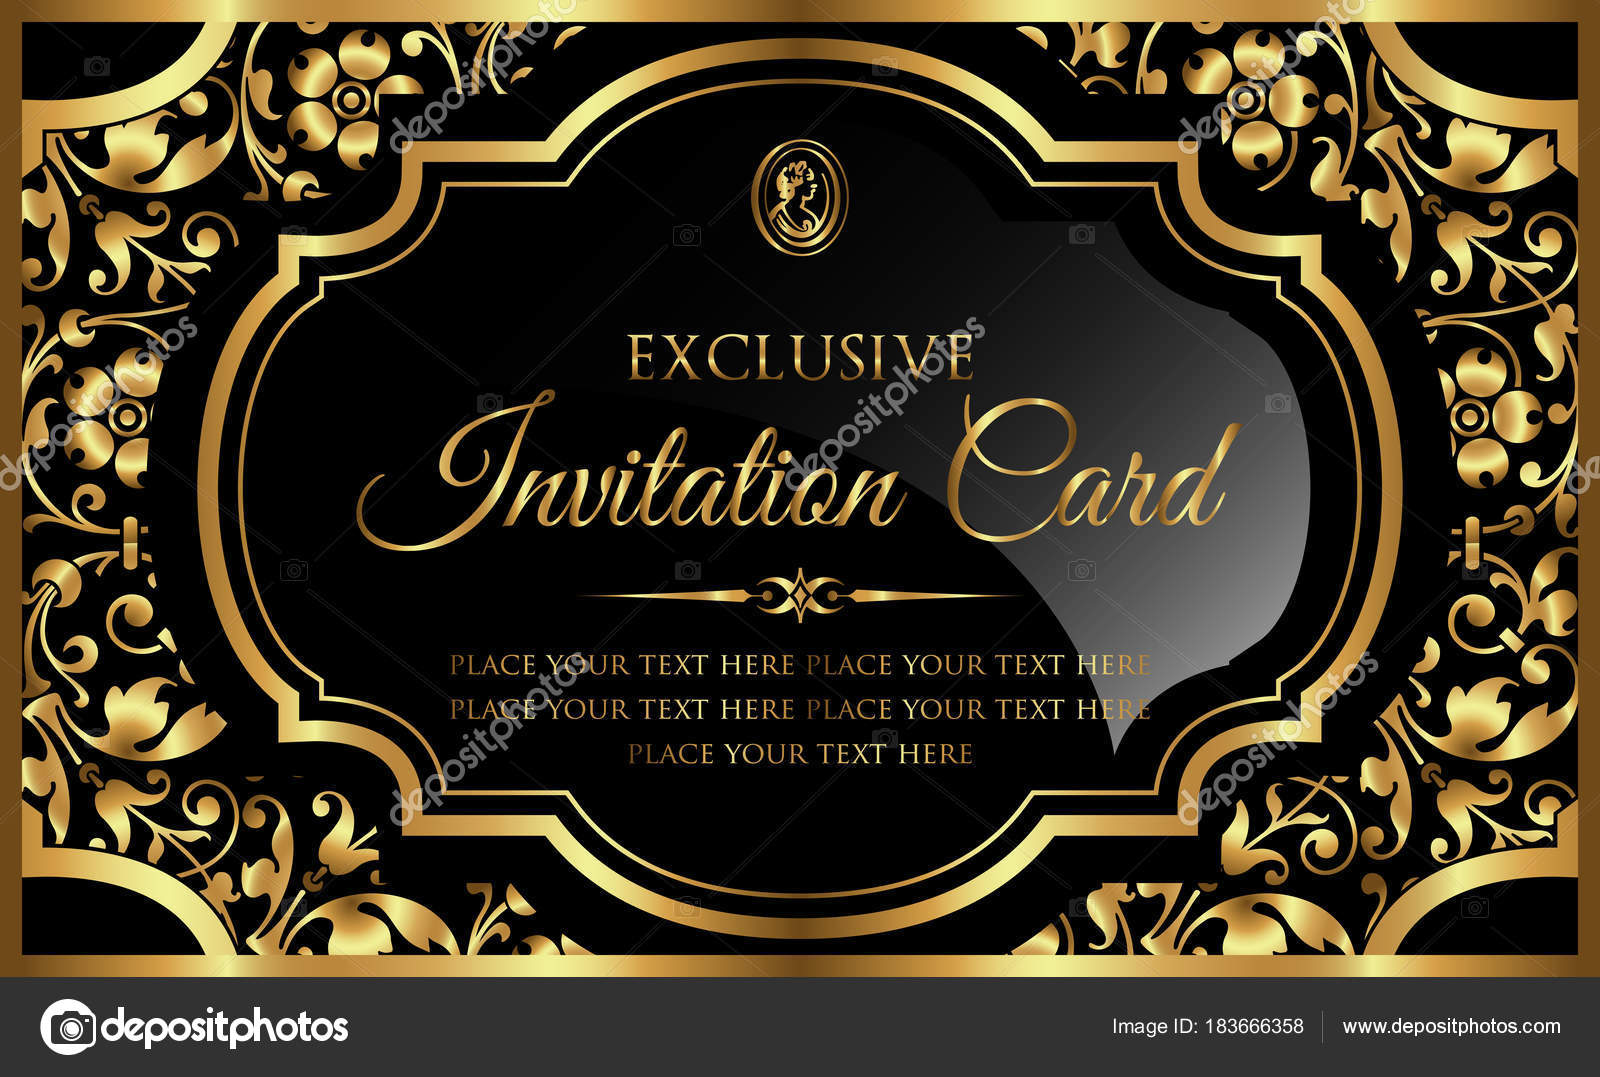 Invitation card design - luxury black and gold vintage style — Stock Vector  © bluepencil #183666358